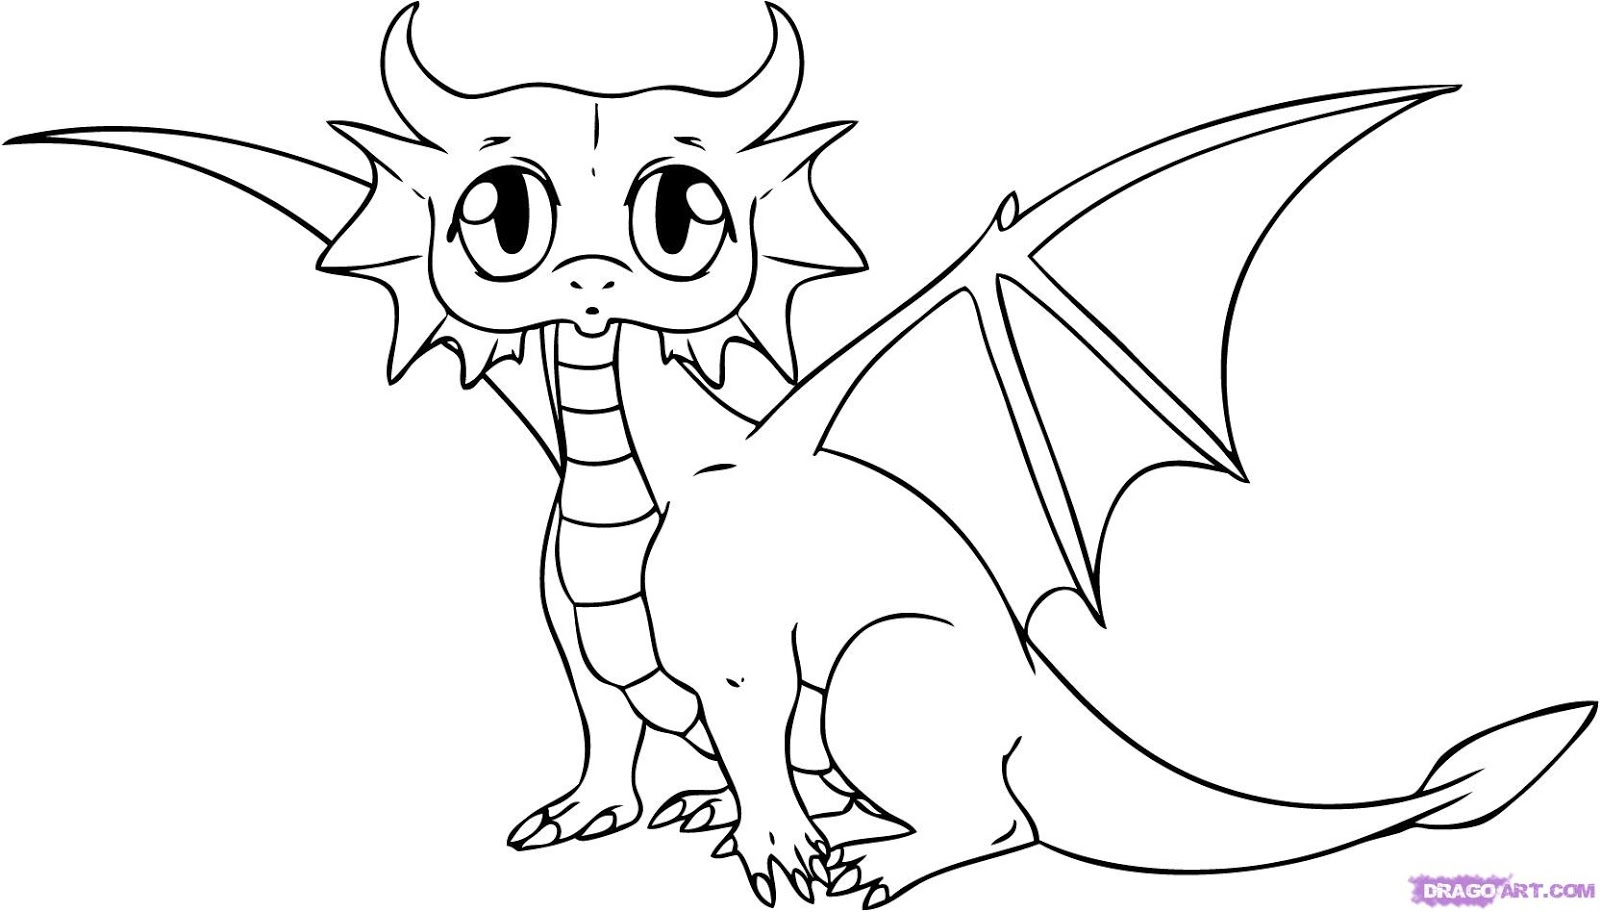 1600x912 Dragon Drawing For Kids How To Draw A Dragon Solution